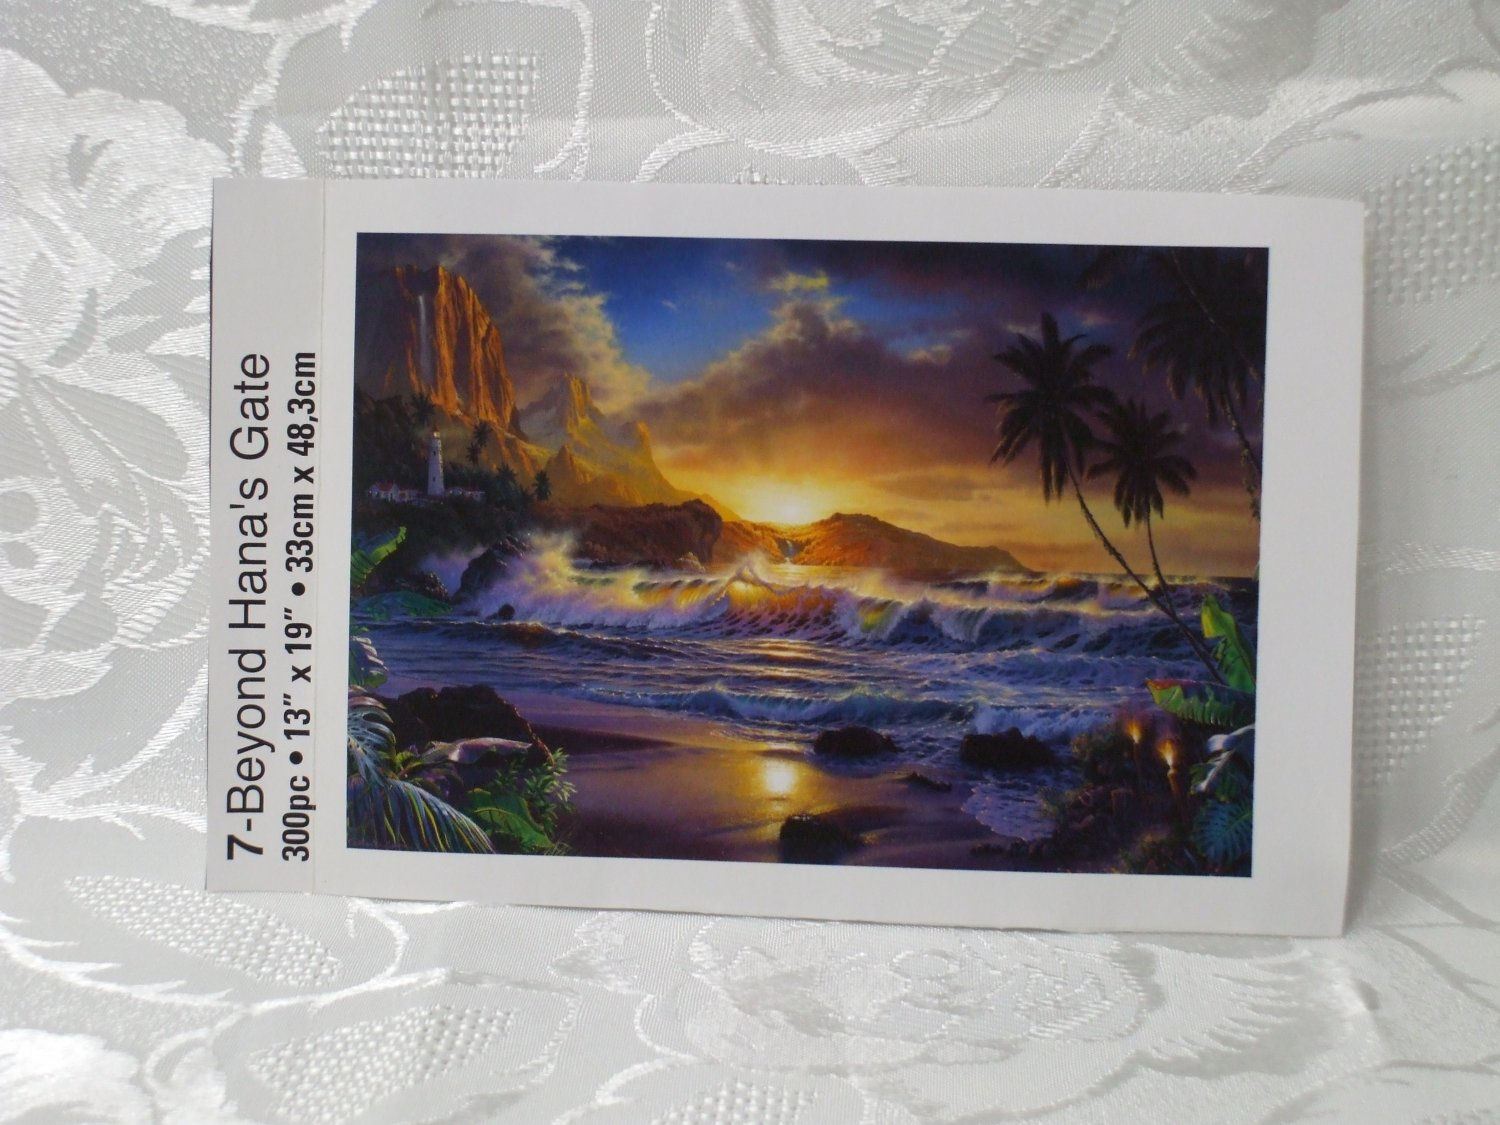 300 Pc Beyond Hana's Gate Puzzle  13 in x 19 in NO BOX